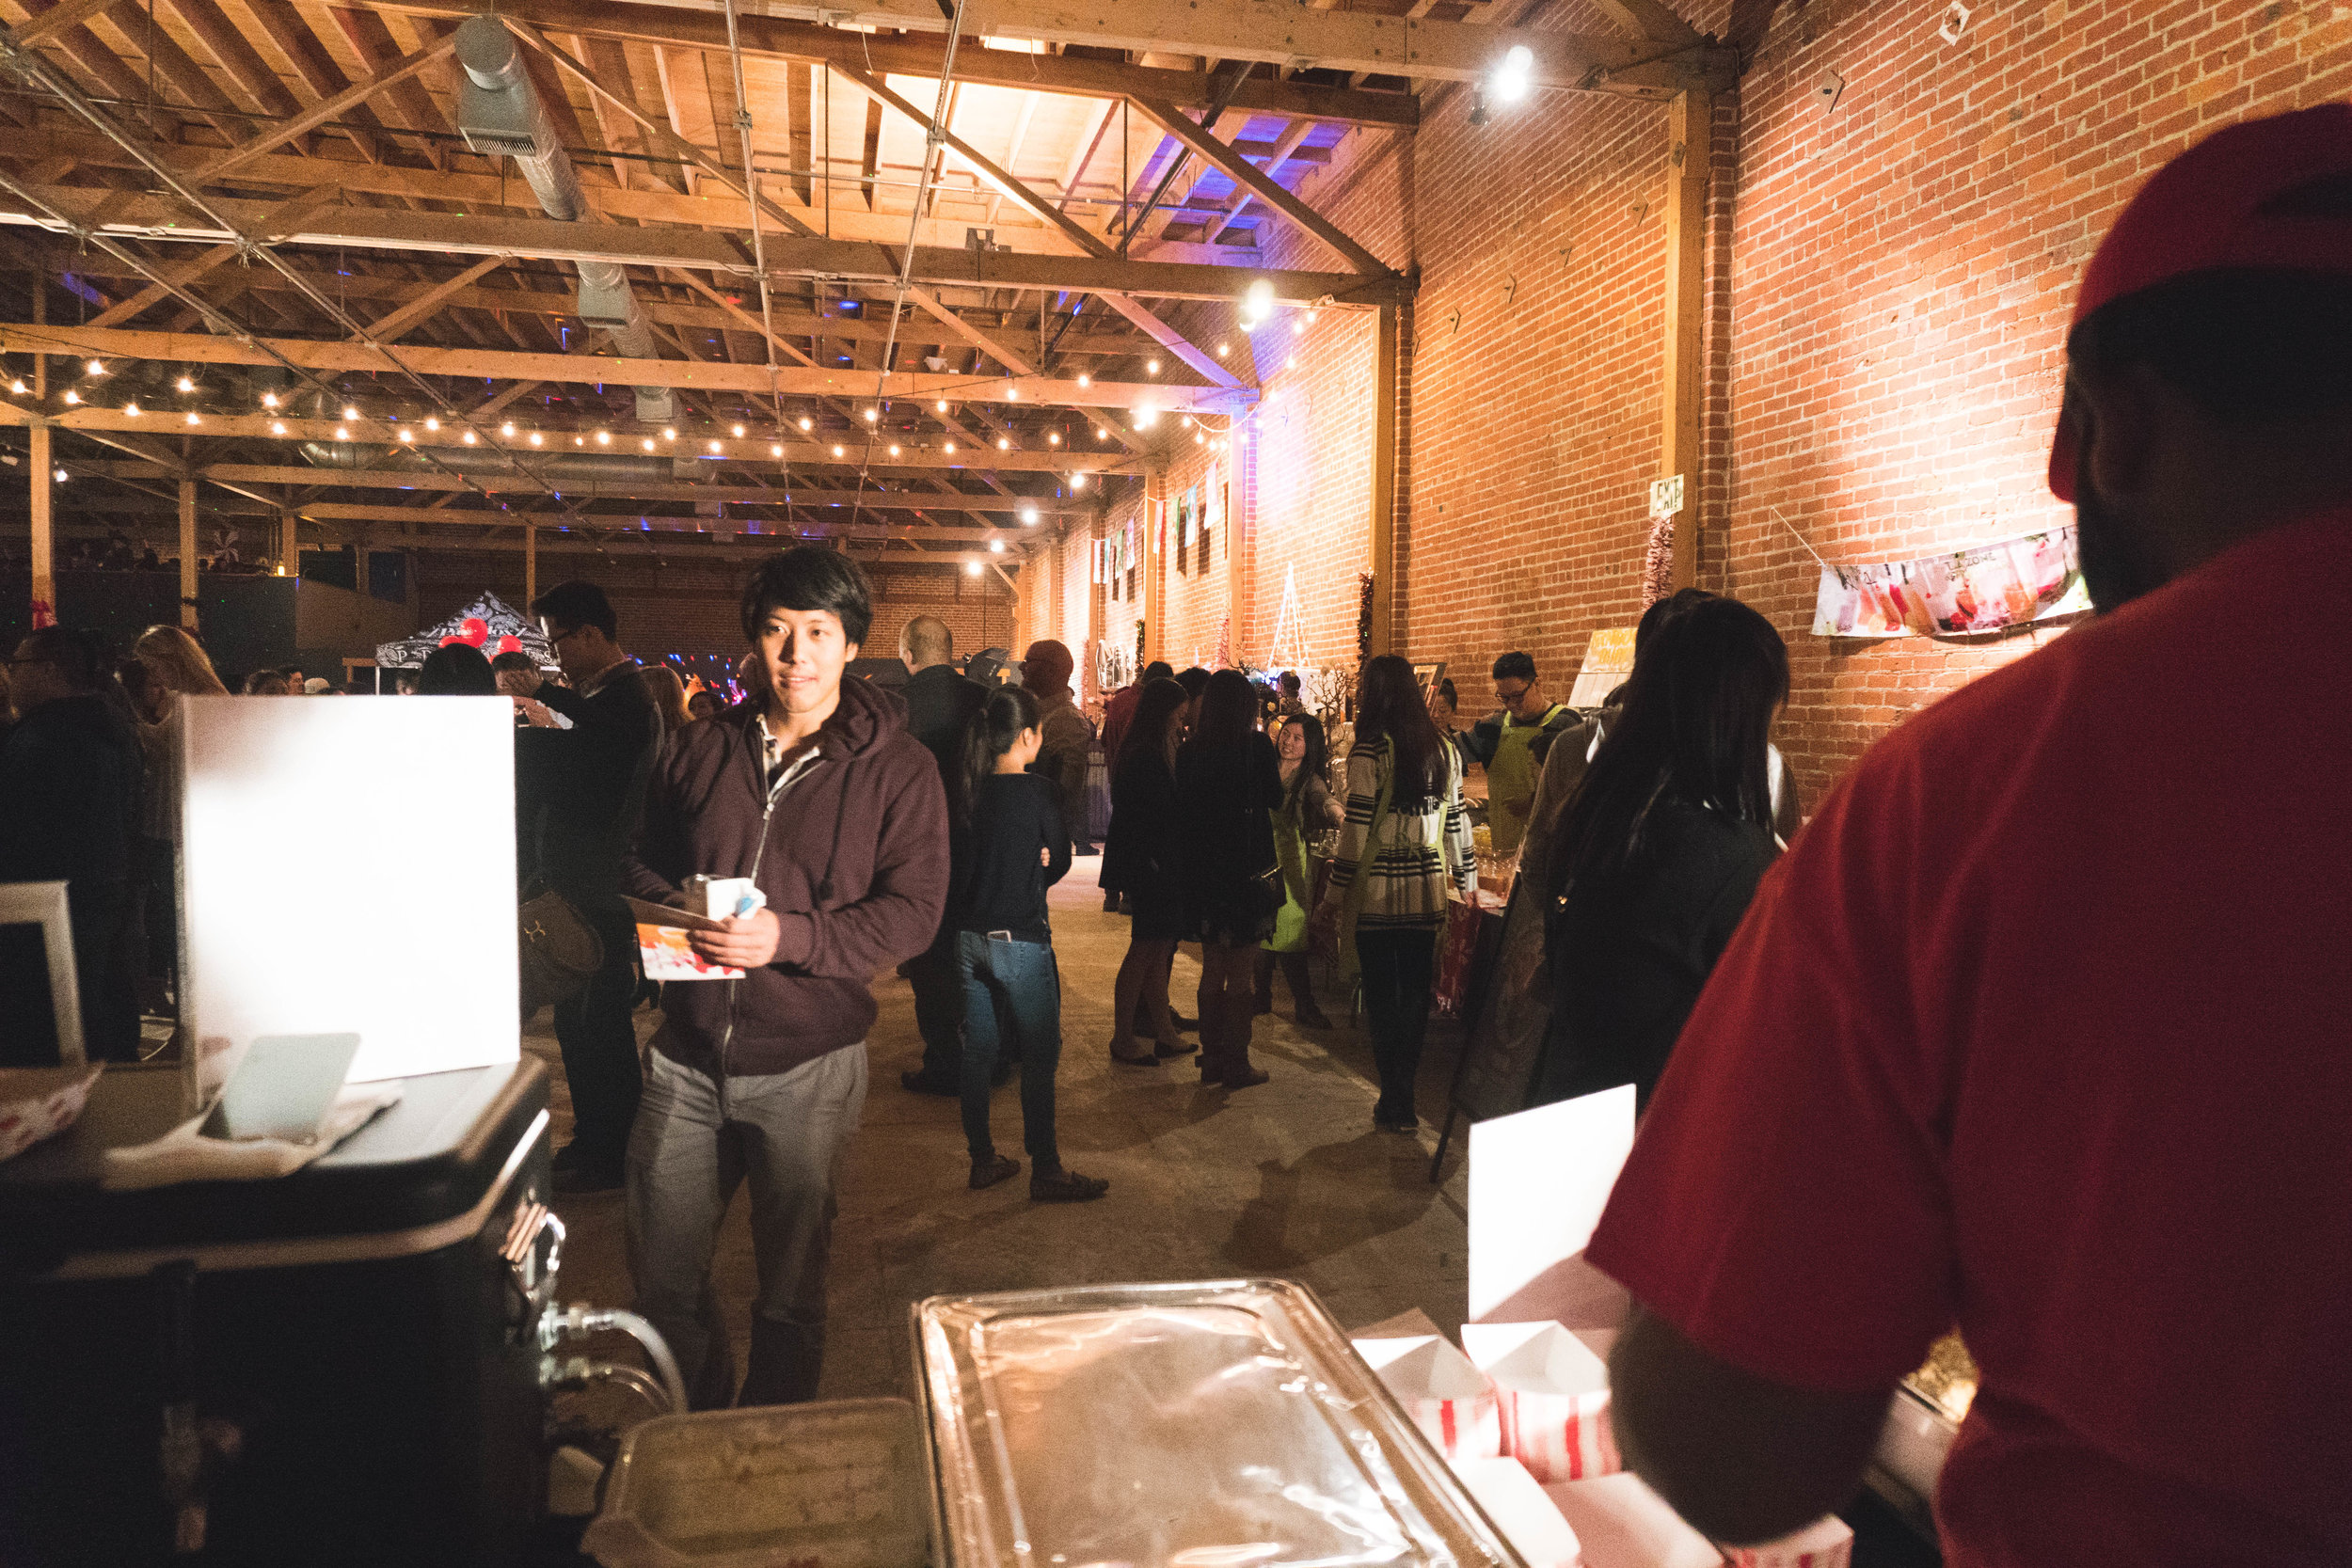 Forager private events parties venue Party yelp-13.jpg